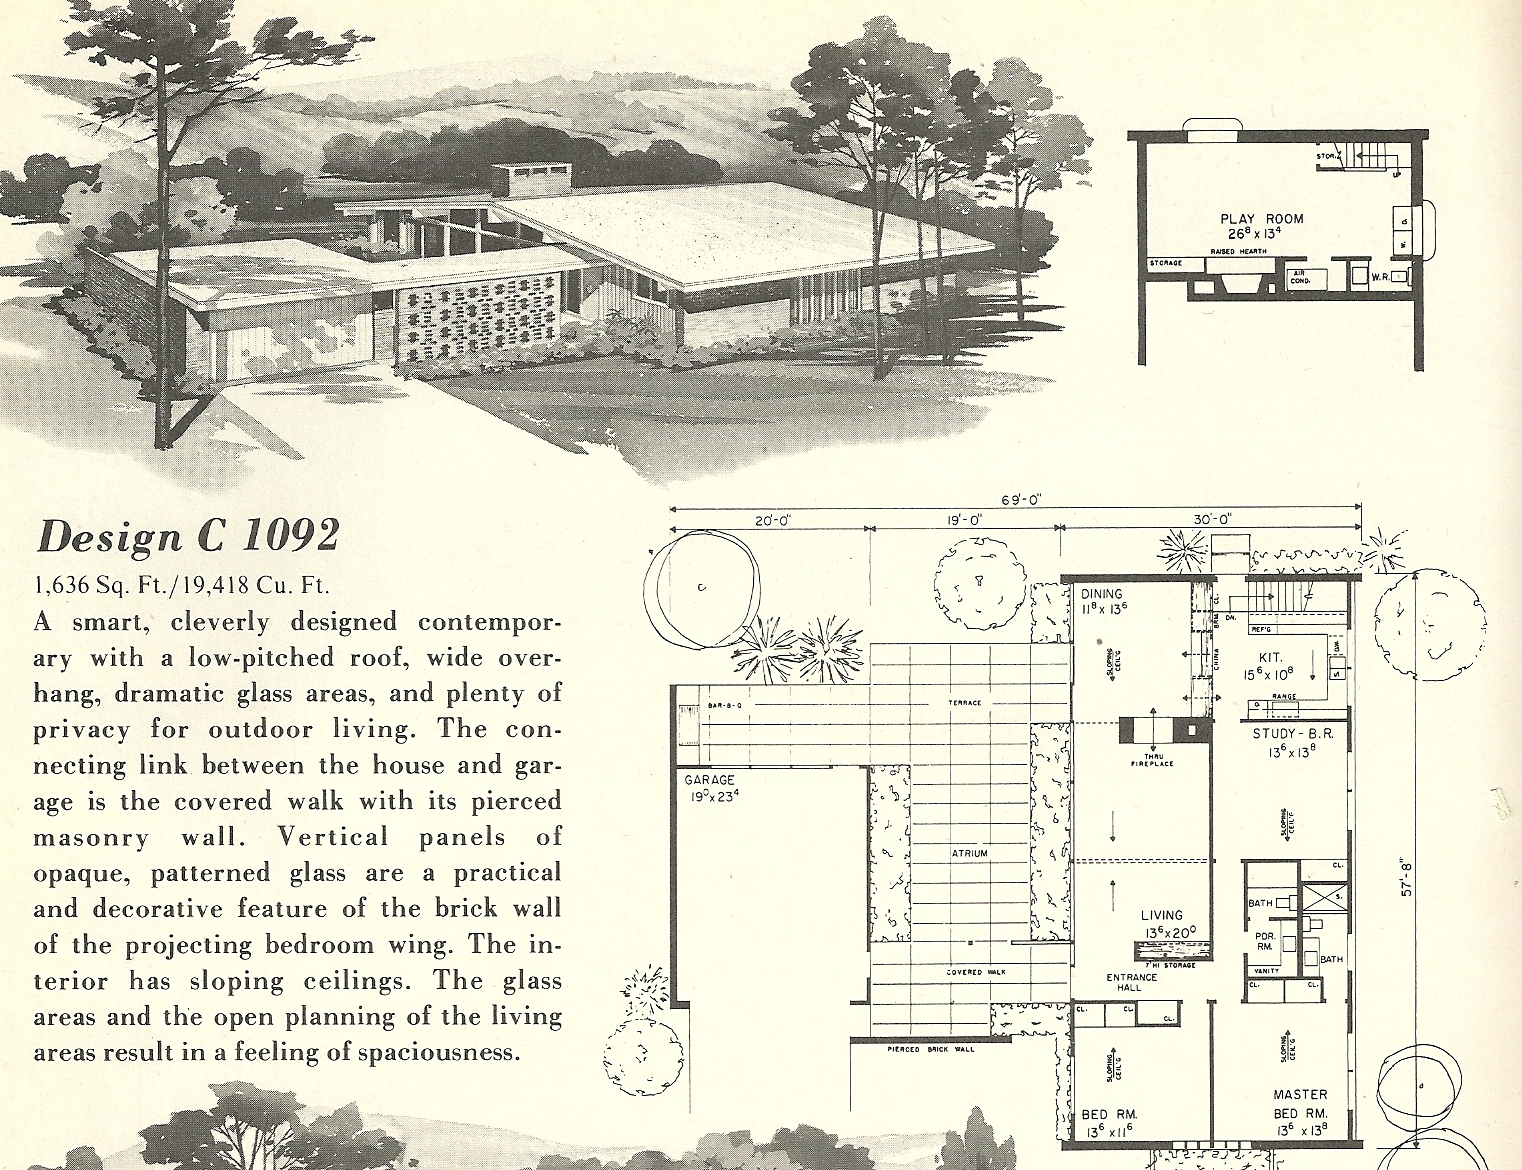 Vintage house plans 1092 antique alter ego Mid century modern home plans